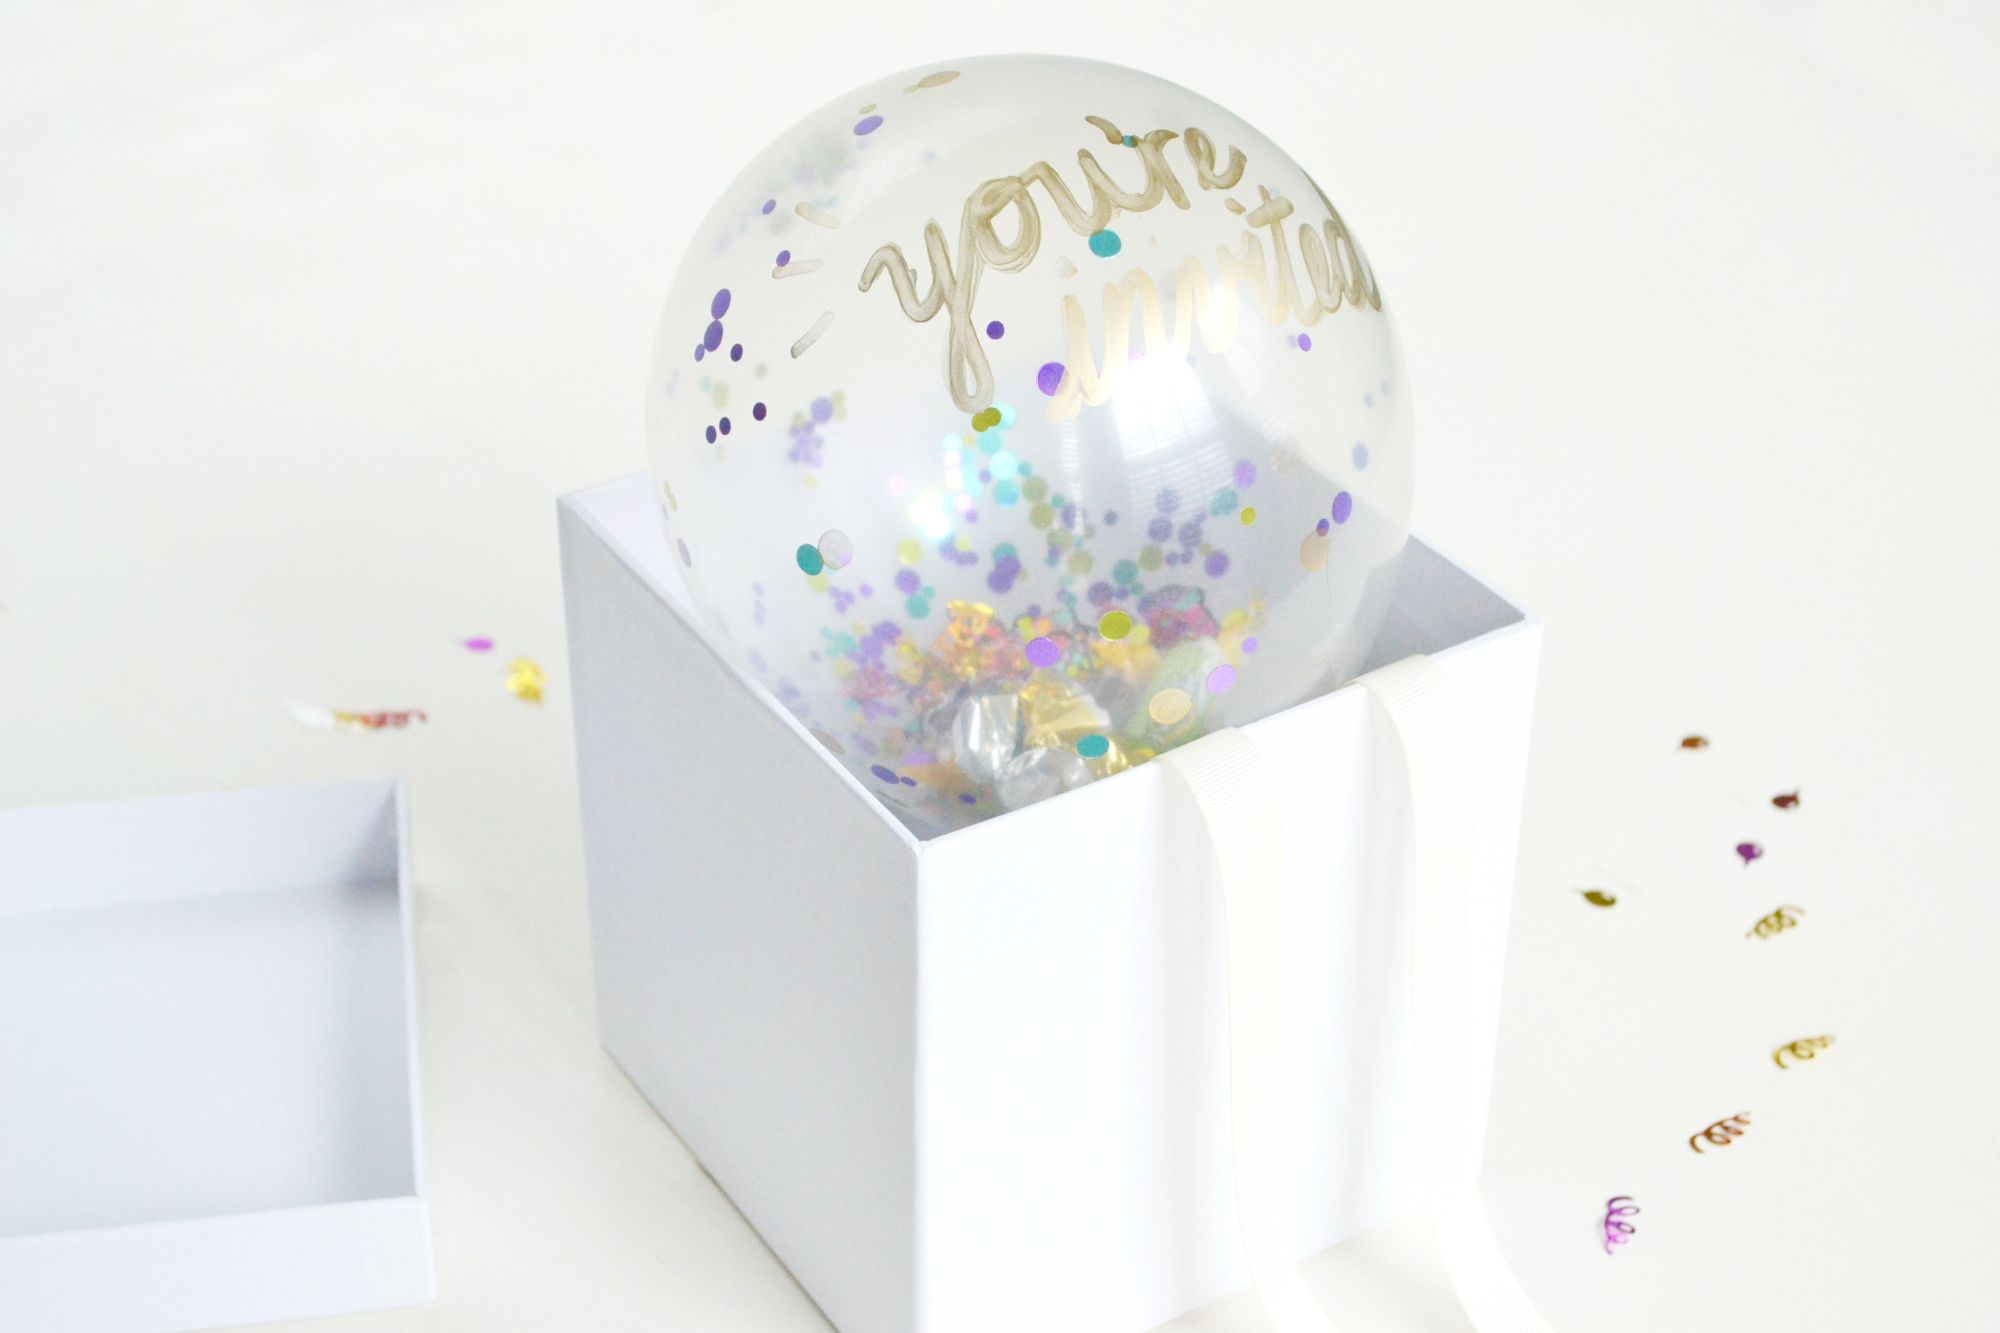 DIY Confetti Balloon Invites to Pop a Party